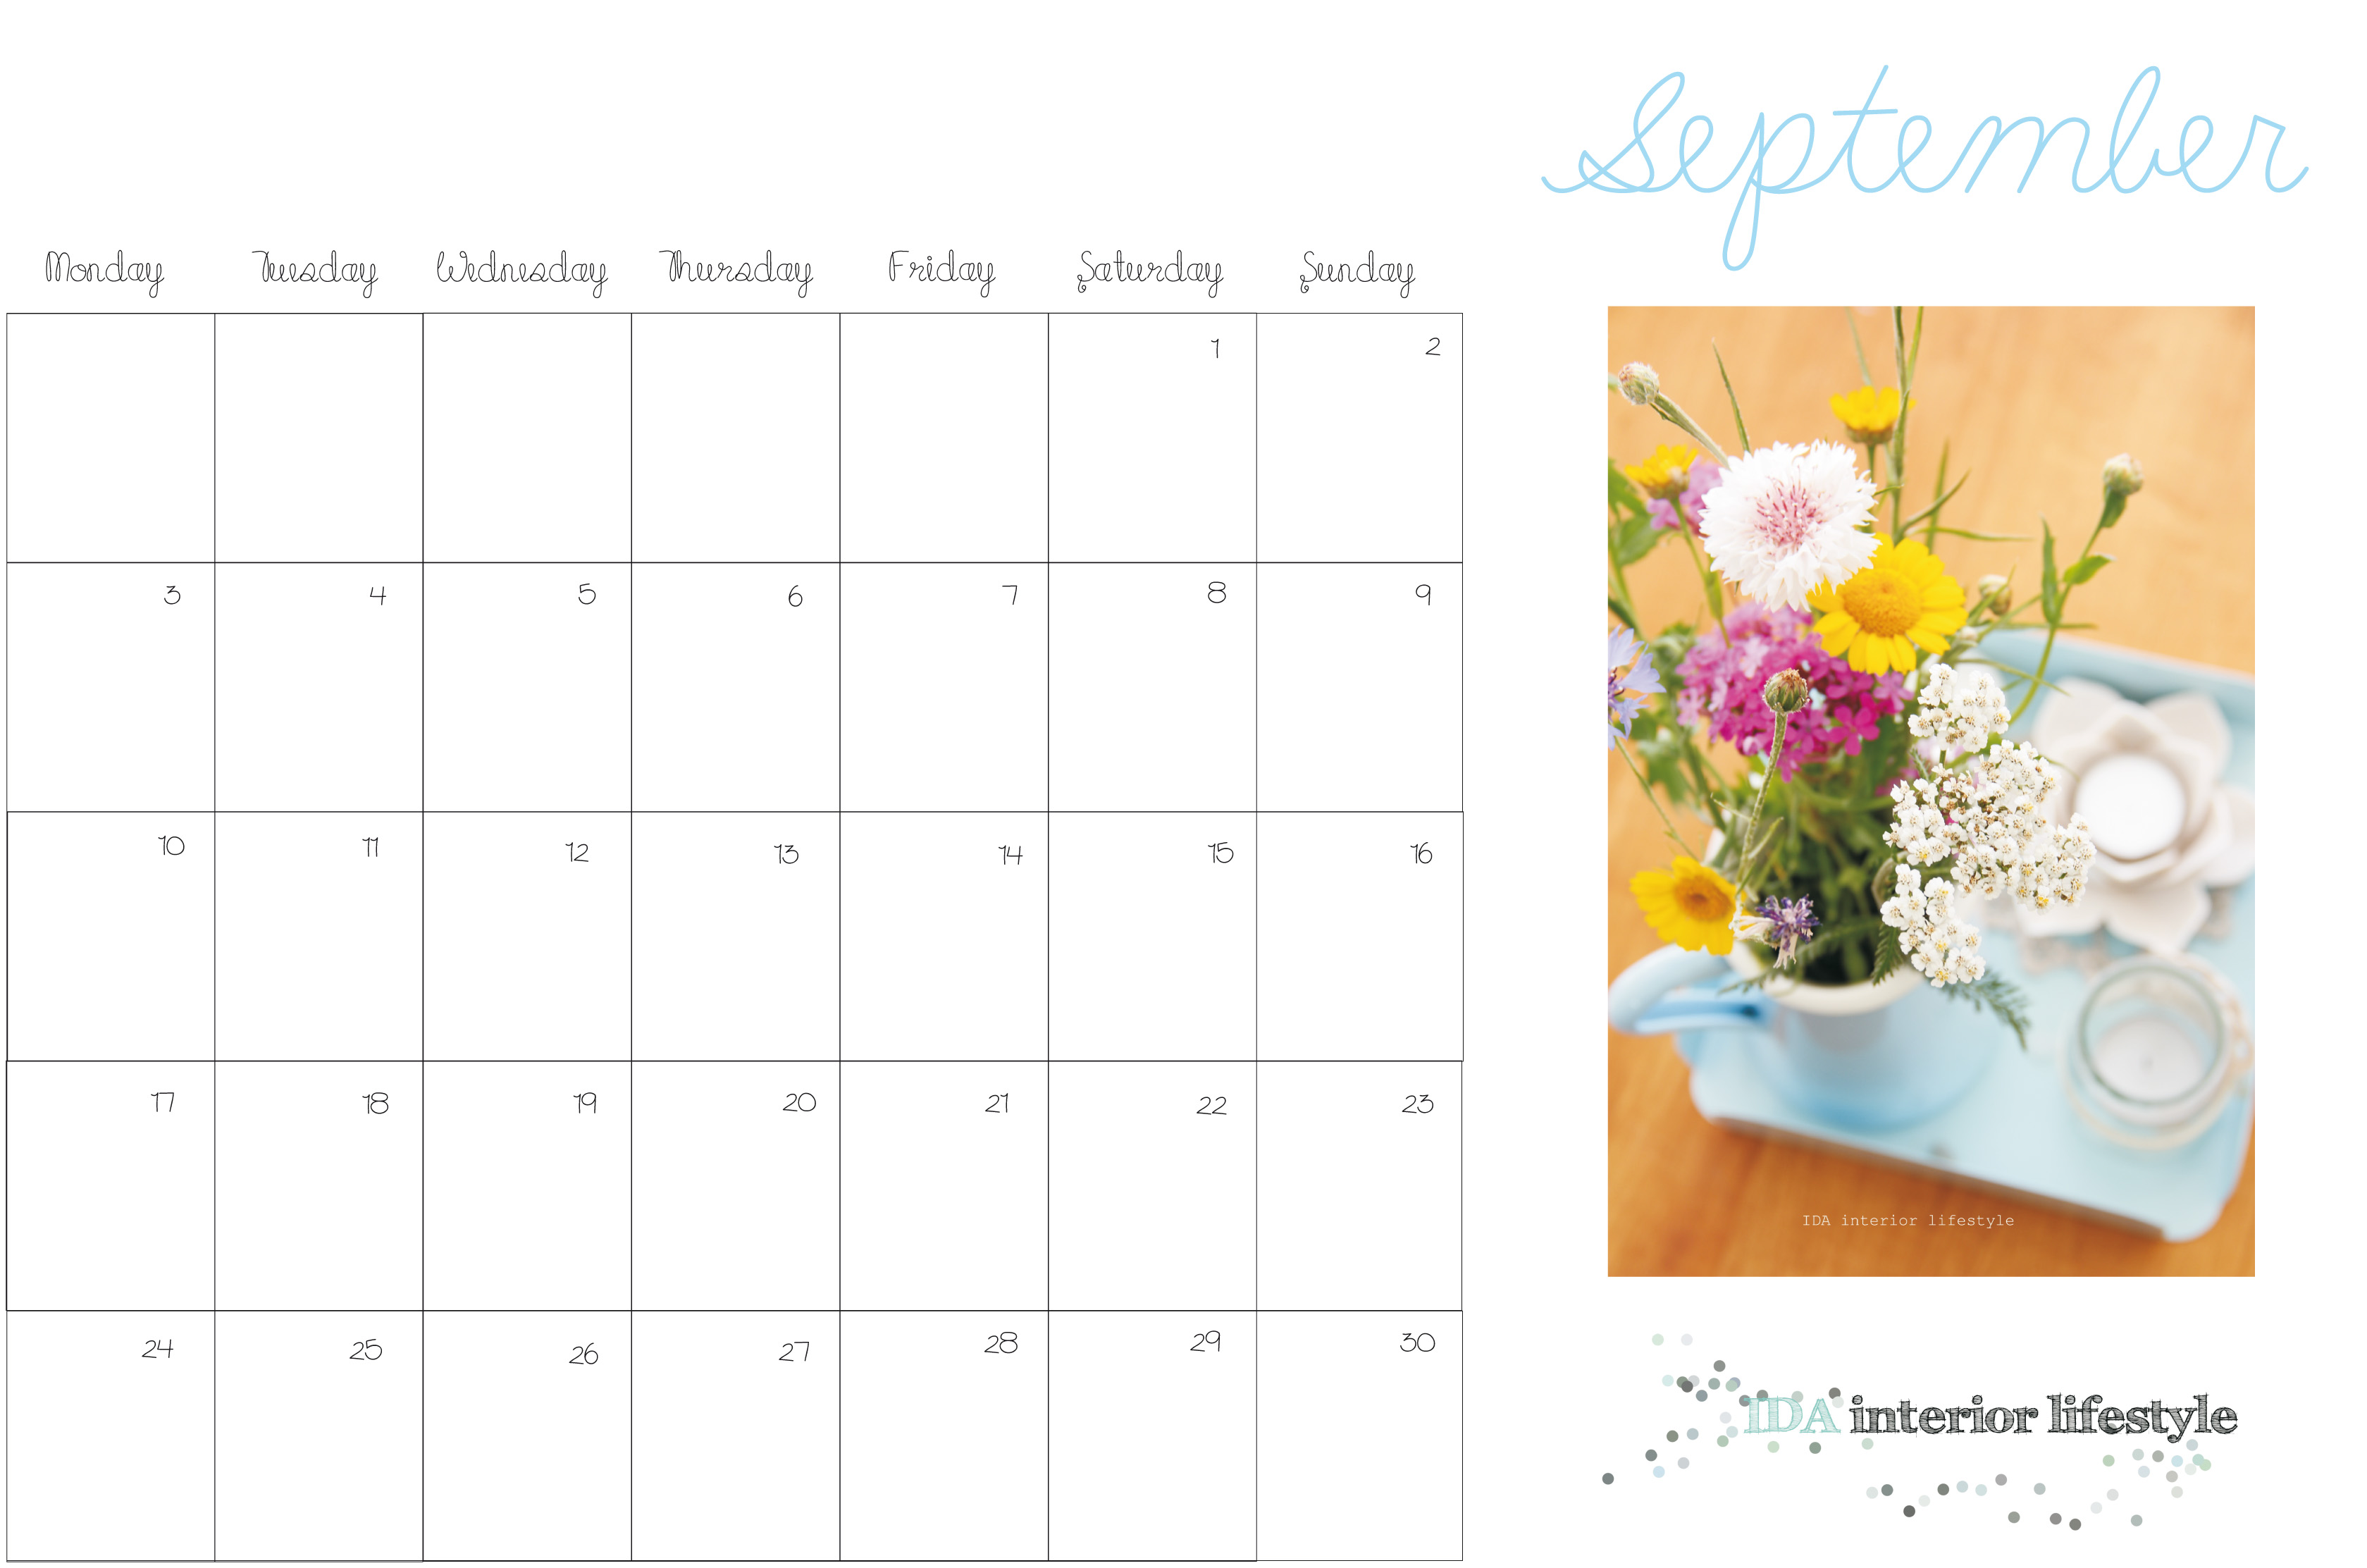 calendario/corel.cdr